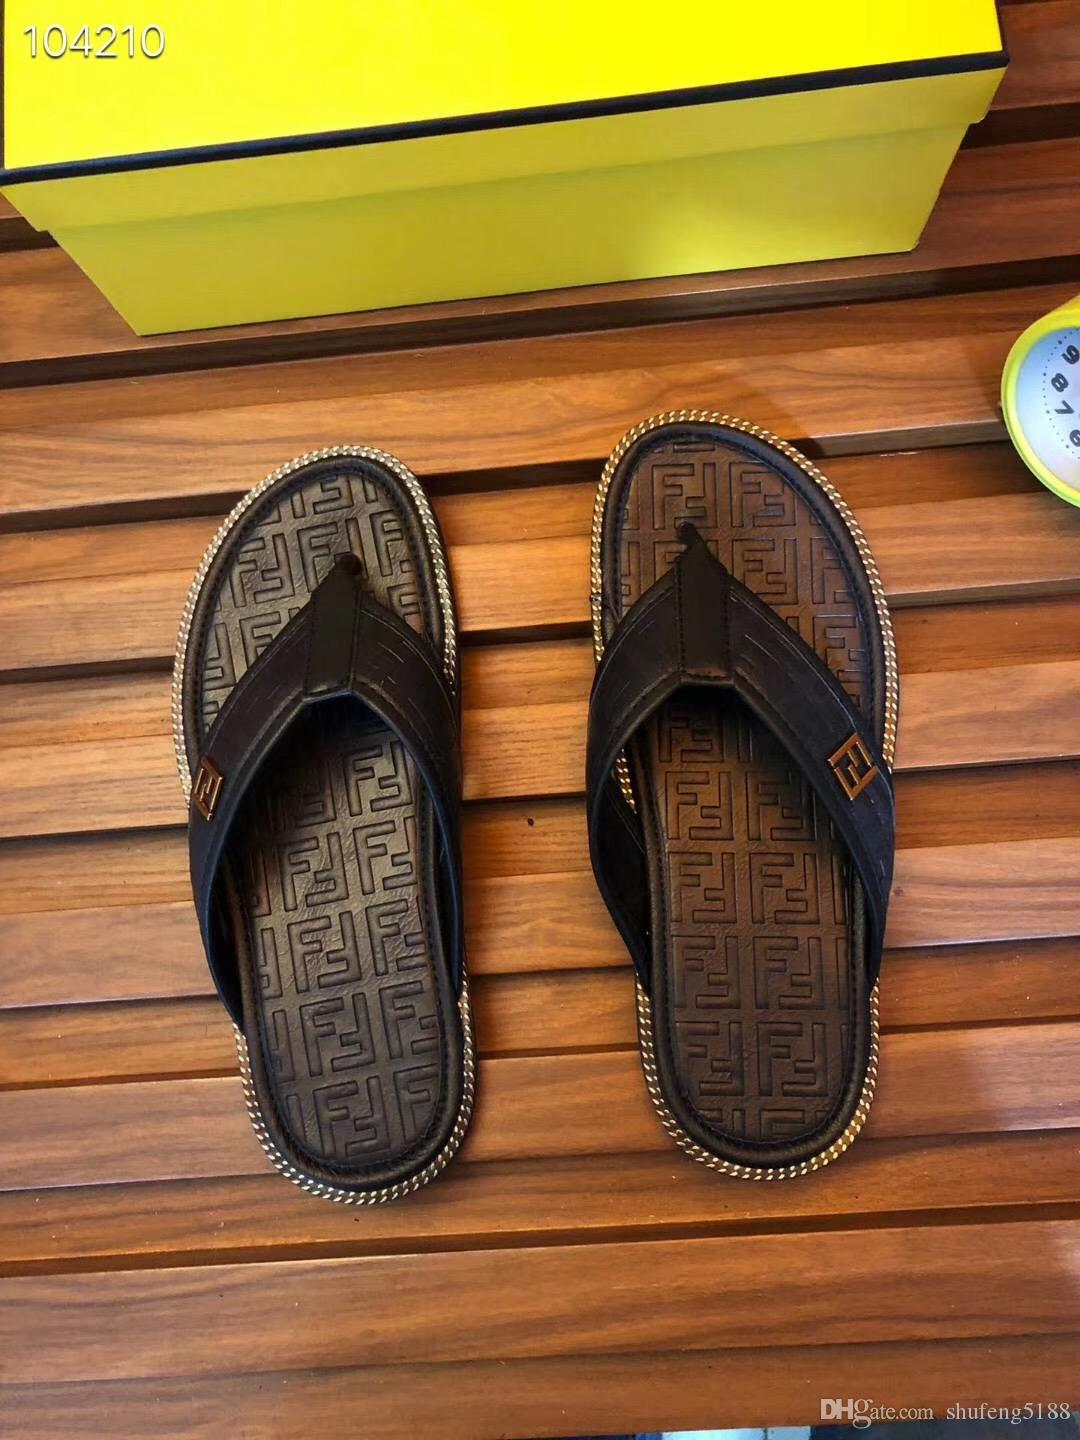 2019 Fashion Summer New Style Popular Men's Flat Espadrilles Shoes Casual Sandals Rubber Mens FF Slippers Flip Flop 38-45